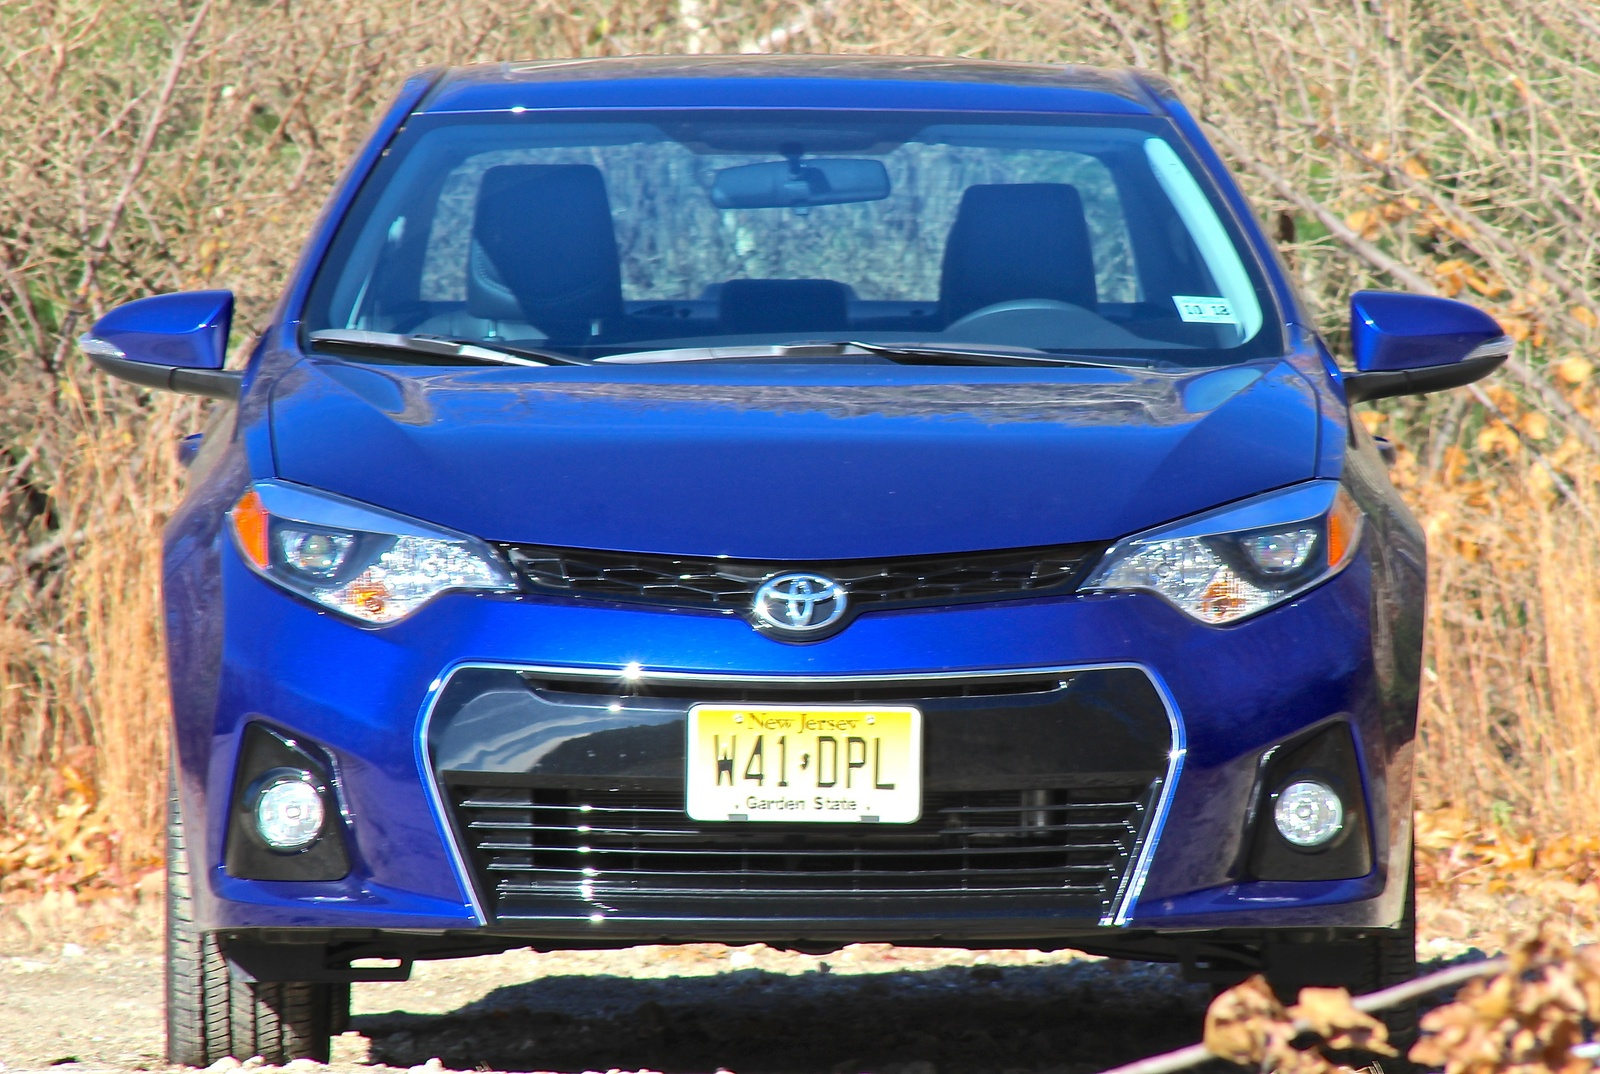 Front view of the 2014 Toyota Corolla